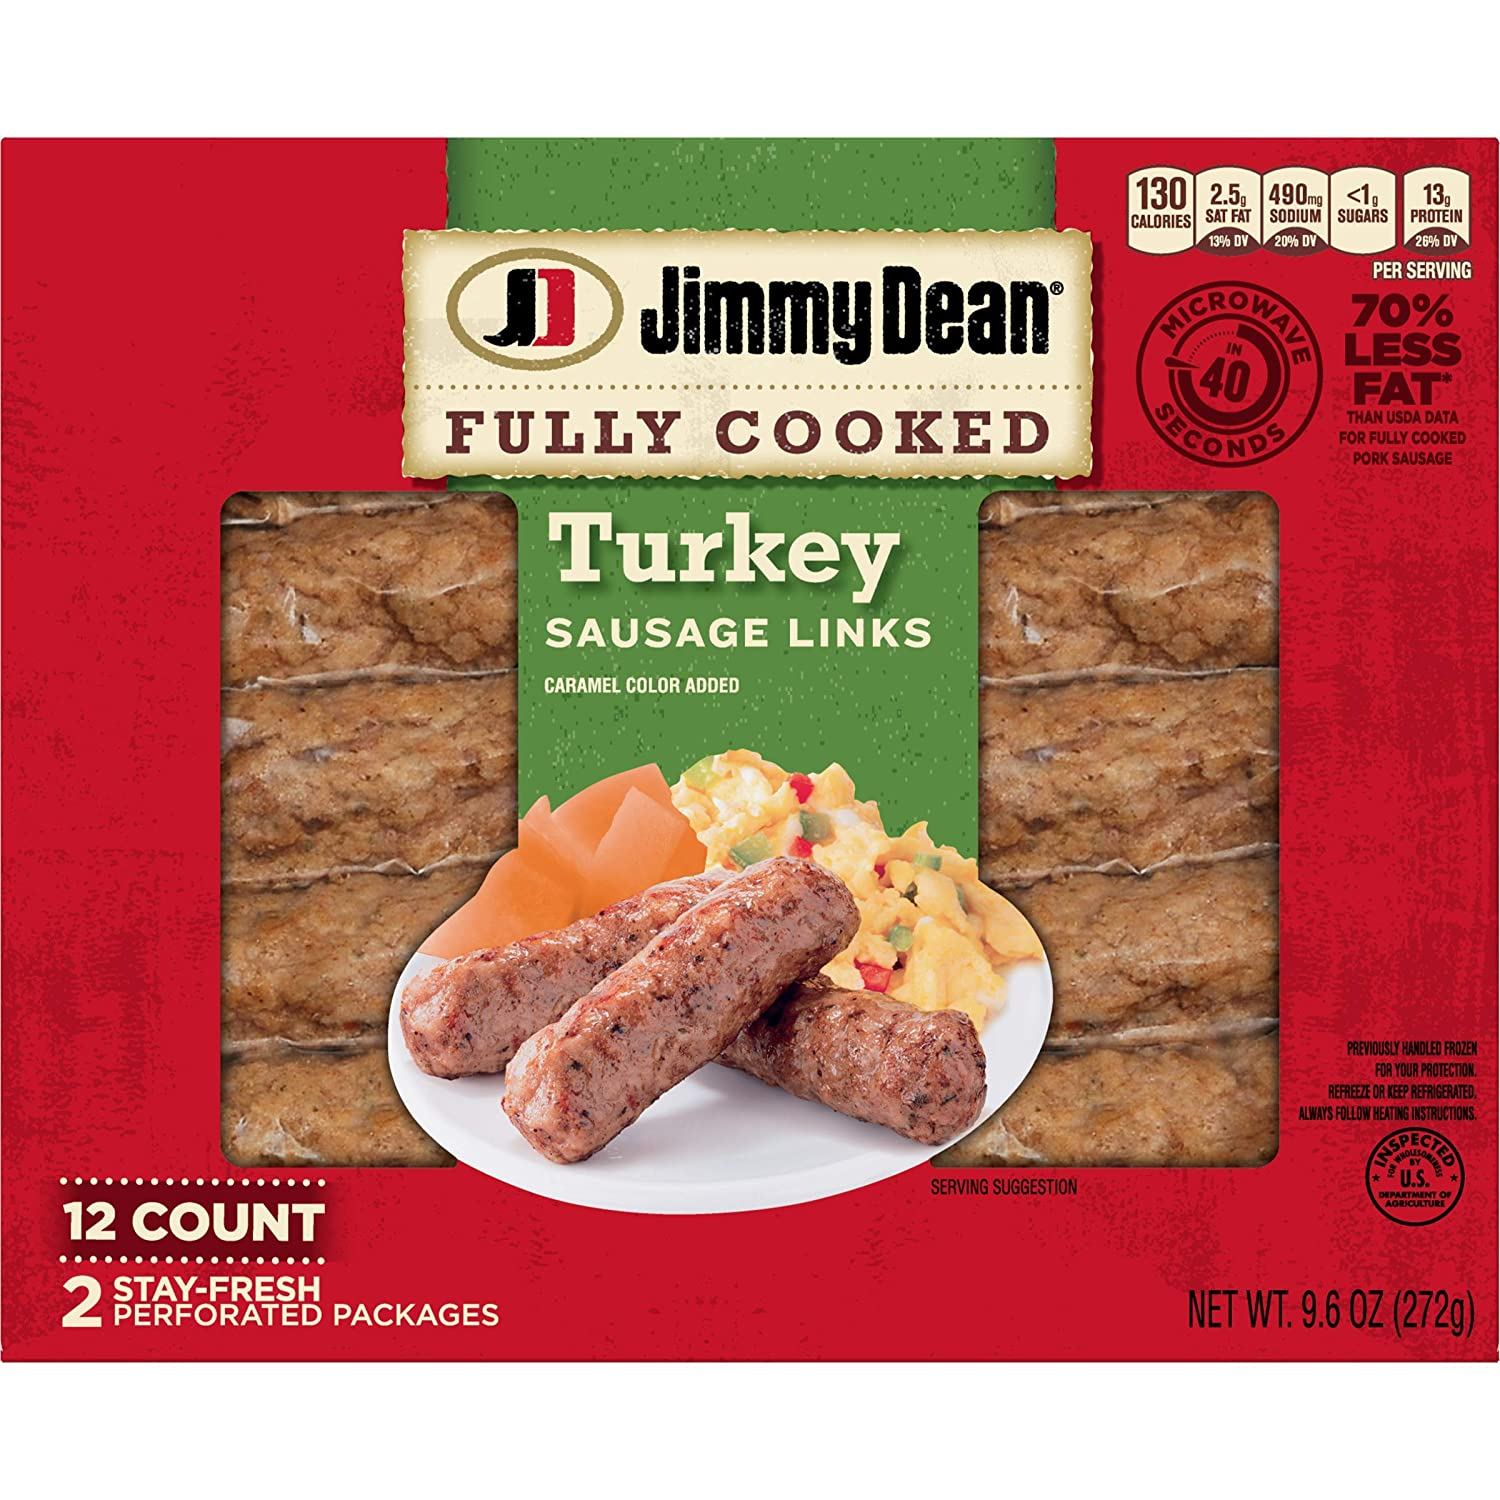 Jimmy Dean Fully Cooked Turkey Sausage Links, Breakfast Sausages, 12 Count